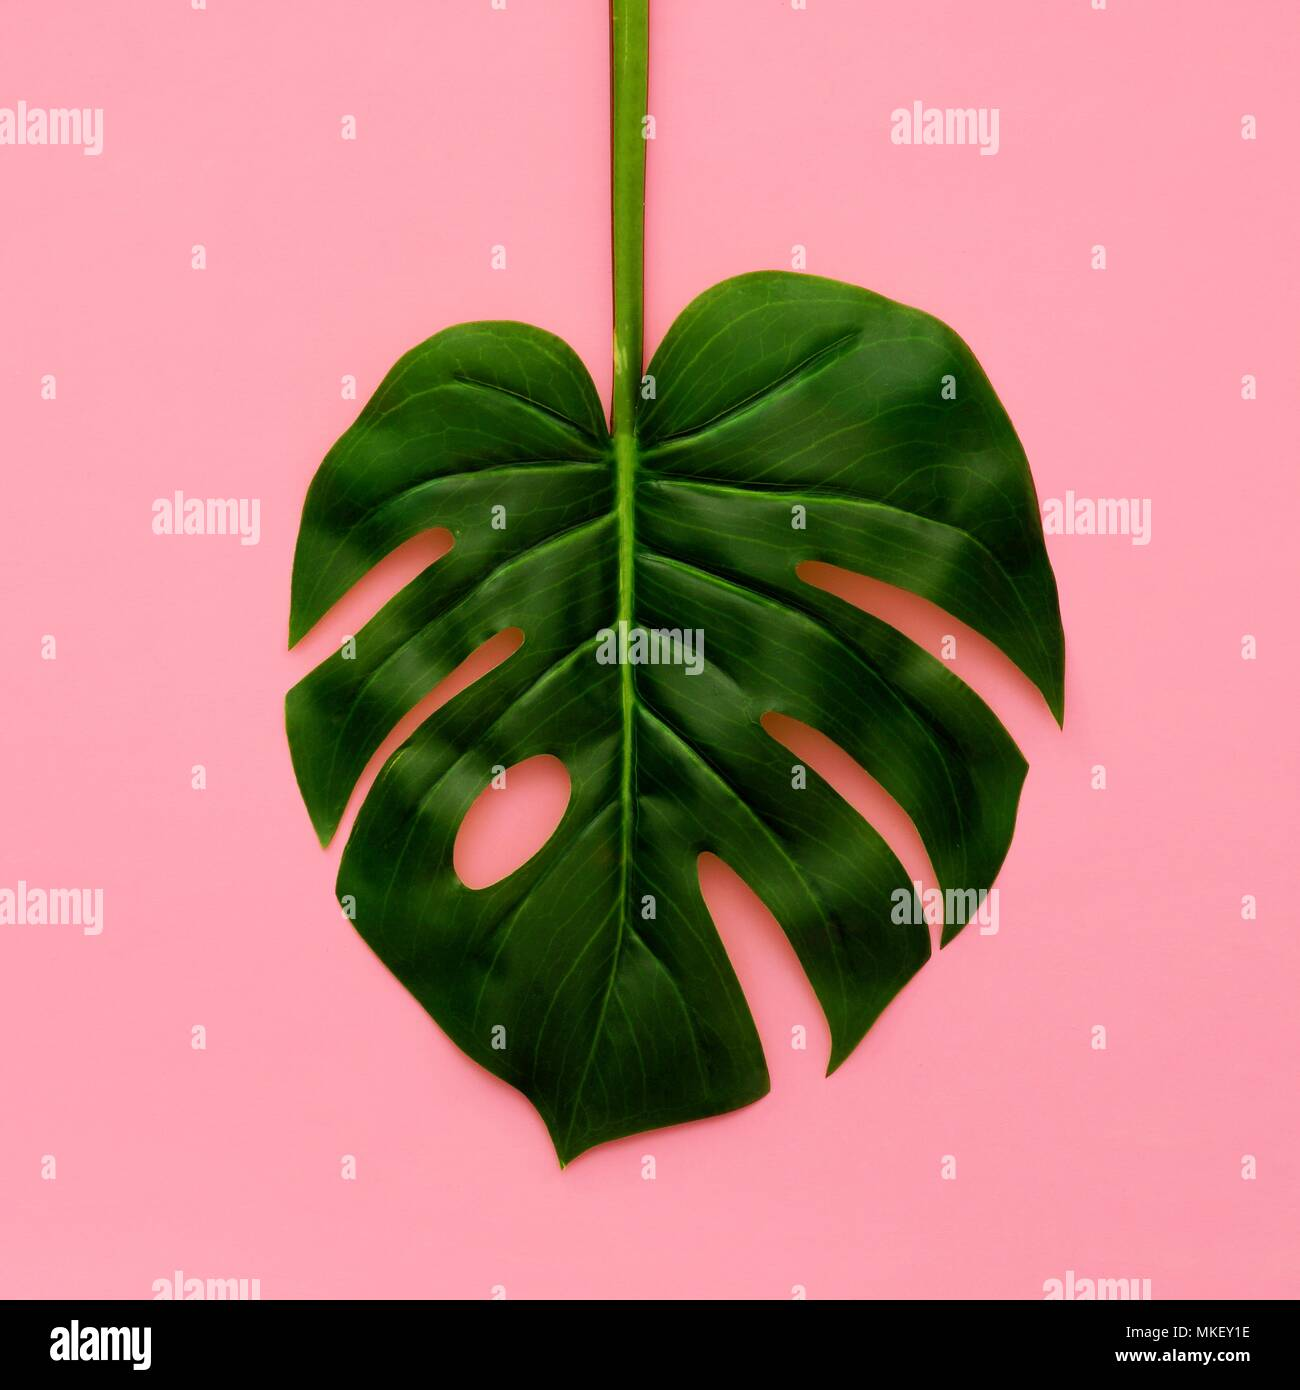 Tropical palm leaf on a light pink background. Minimal nature. Flat lay. Top view. - Stock Image